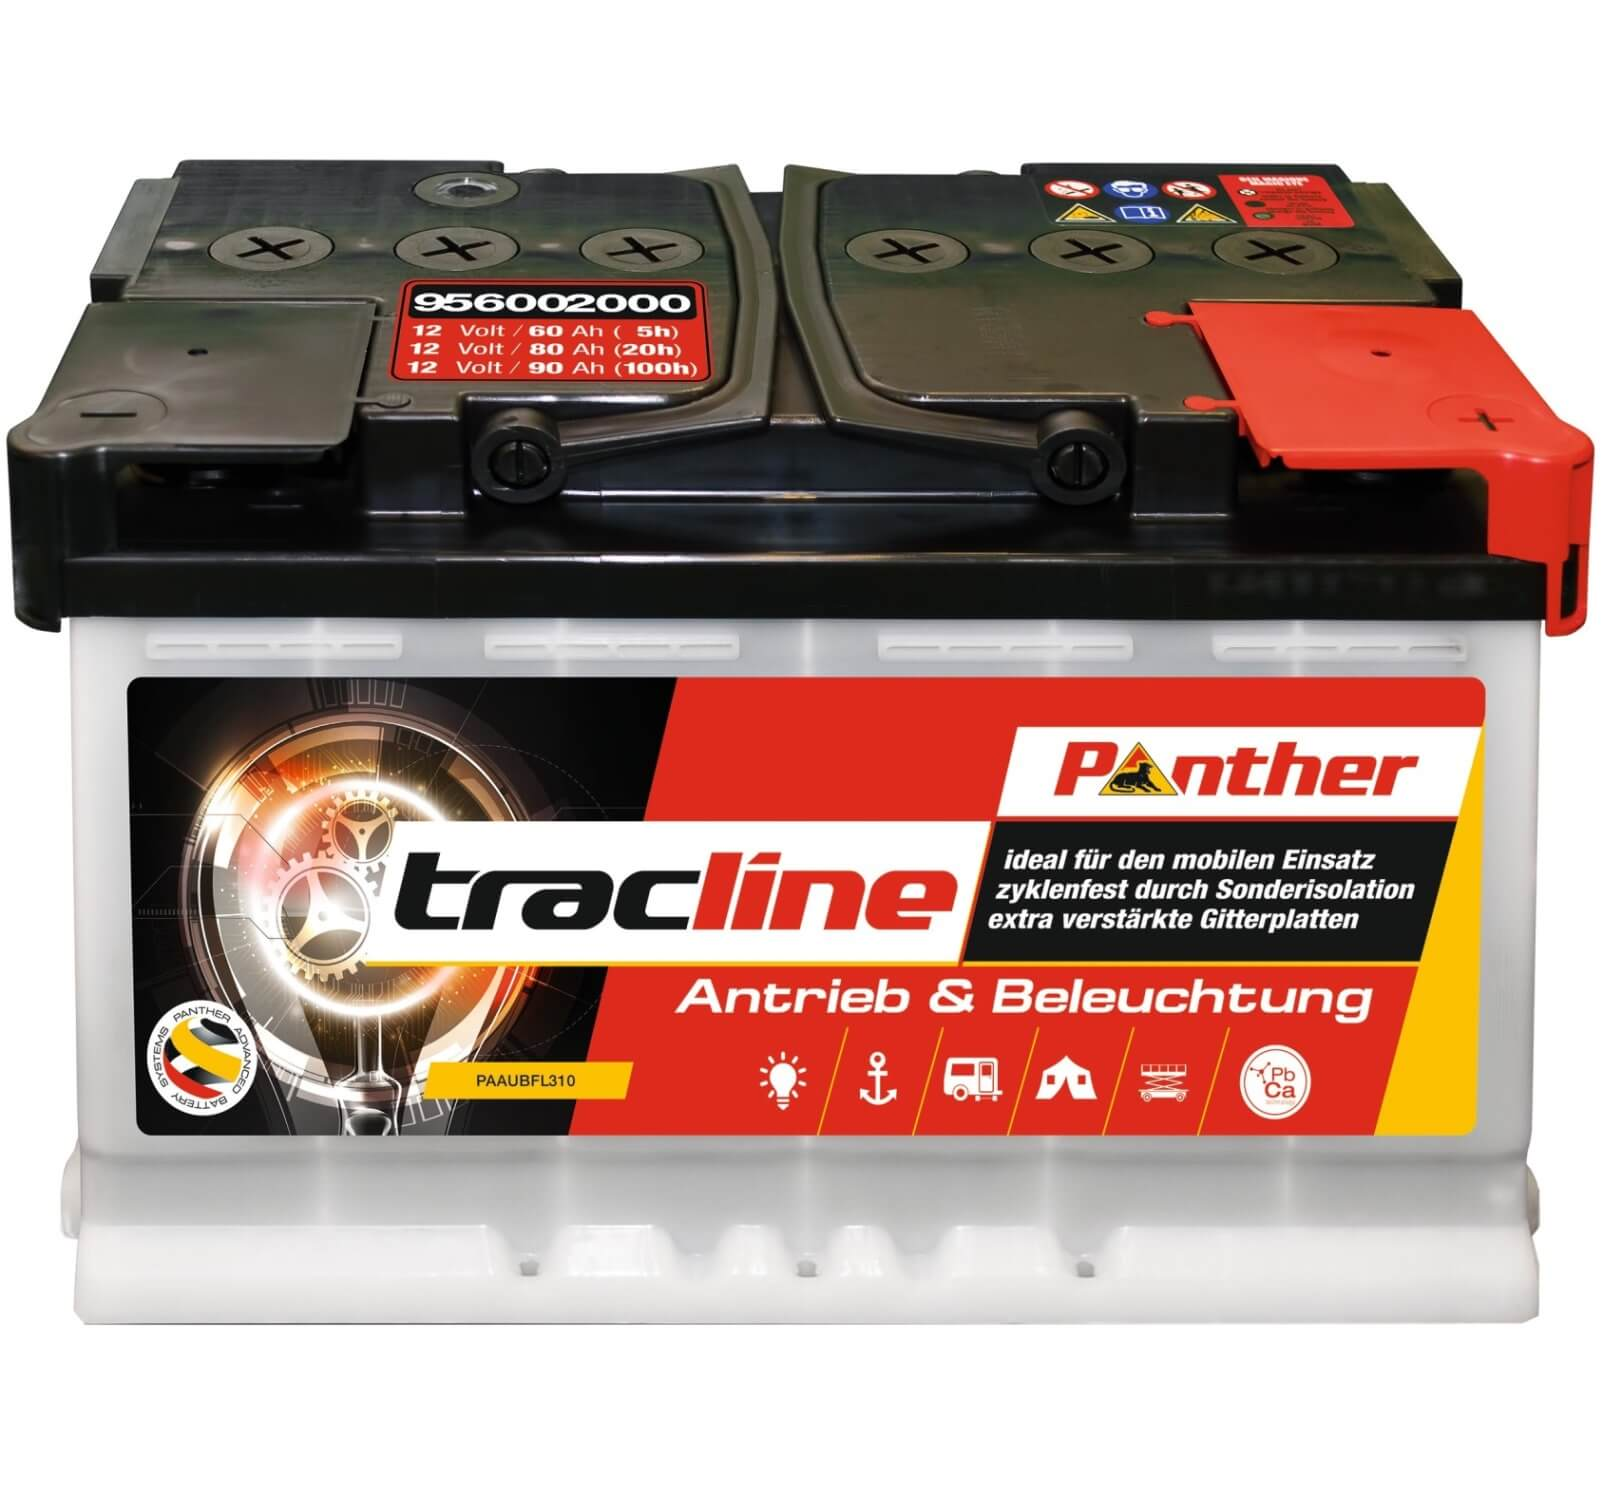 Panther tracline 12 V / 60 Ah (C20) 95602 zyklenfest